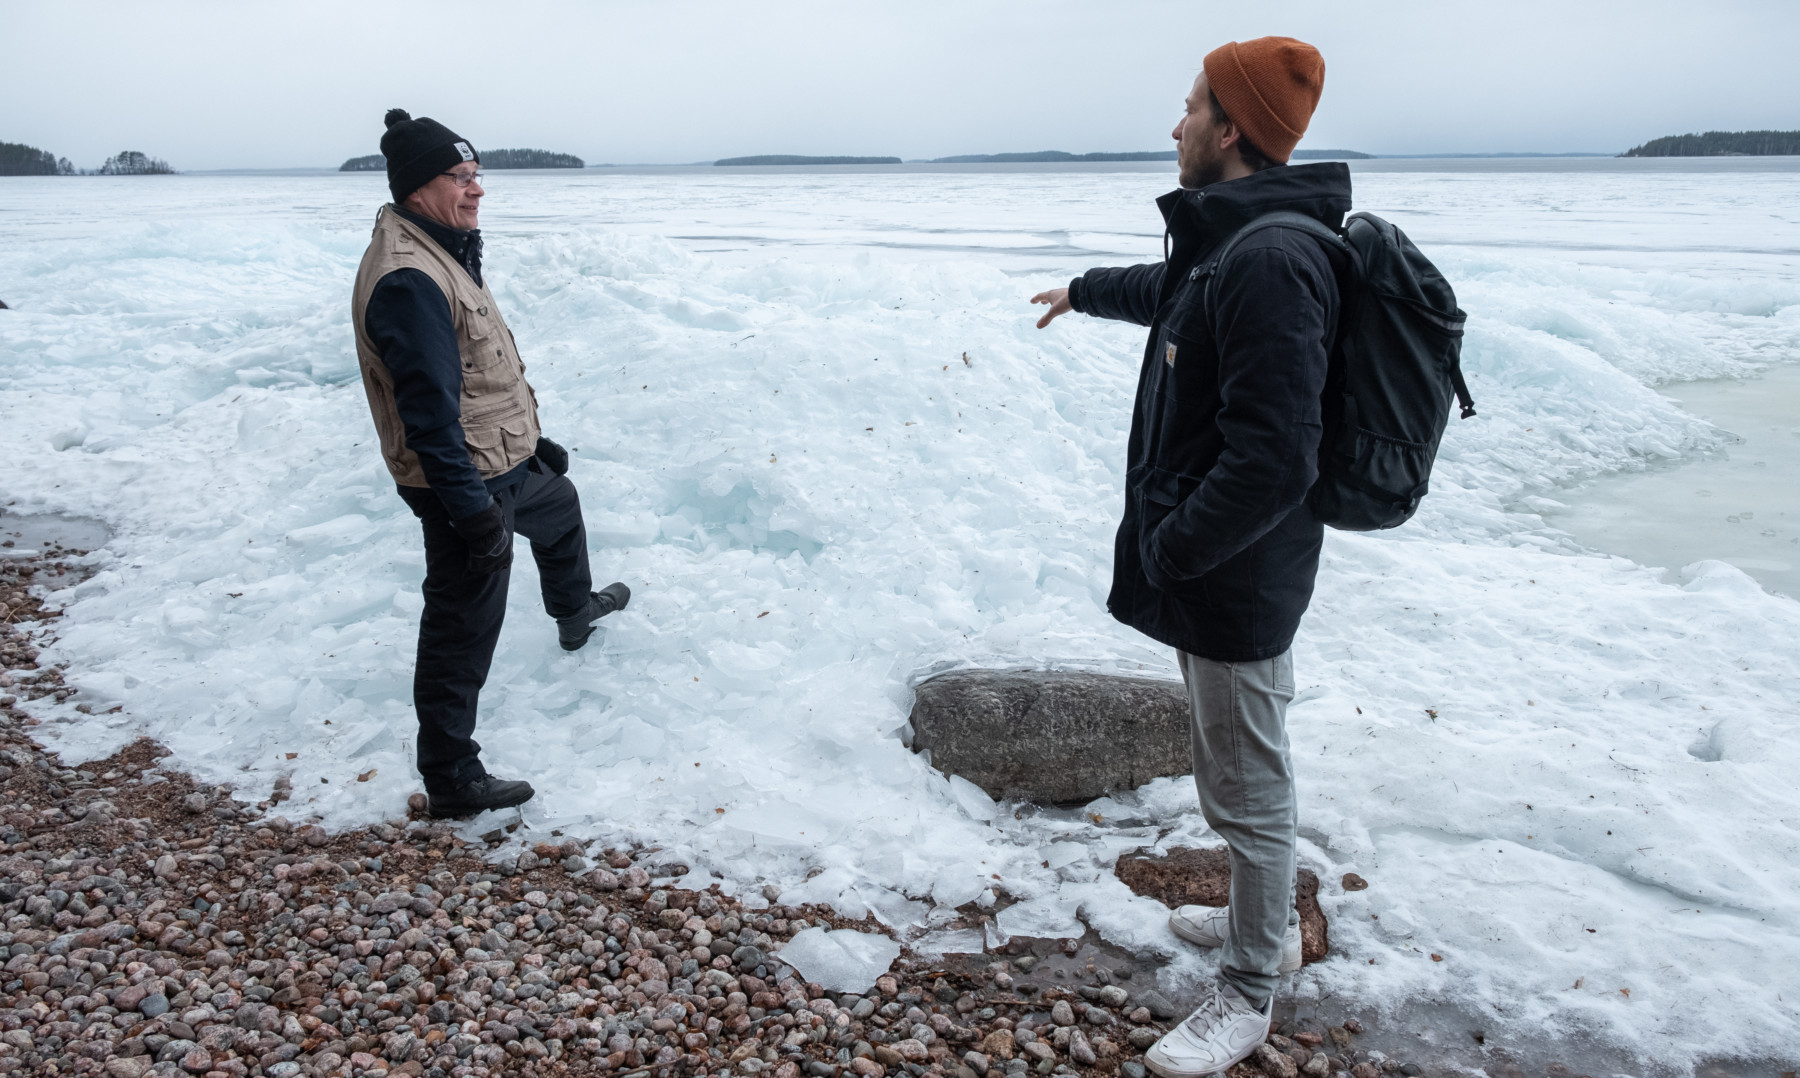 Joonas Fritze of WWF Finland and Ismo Marttinen, a volunteer, survey piles of ice at the Saimaa lakeshore.